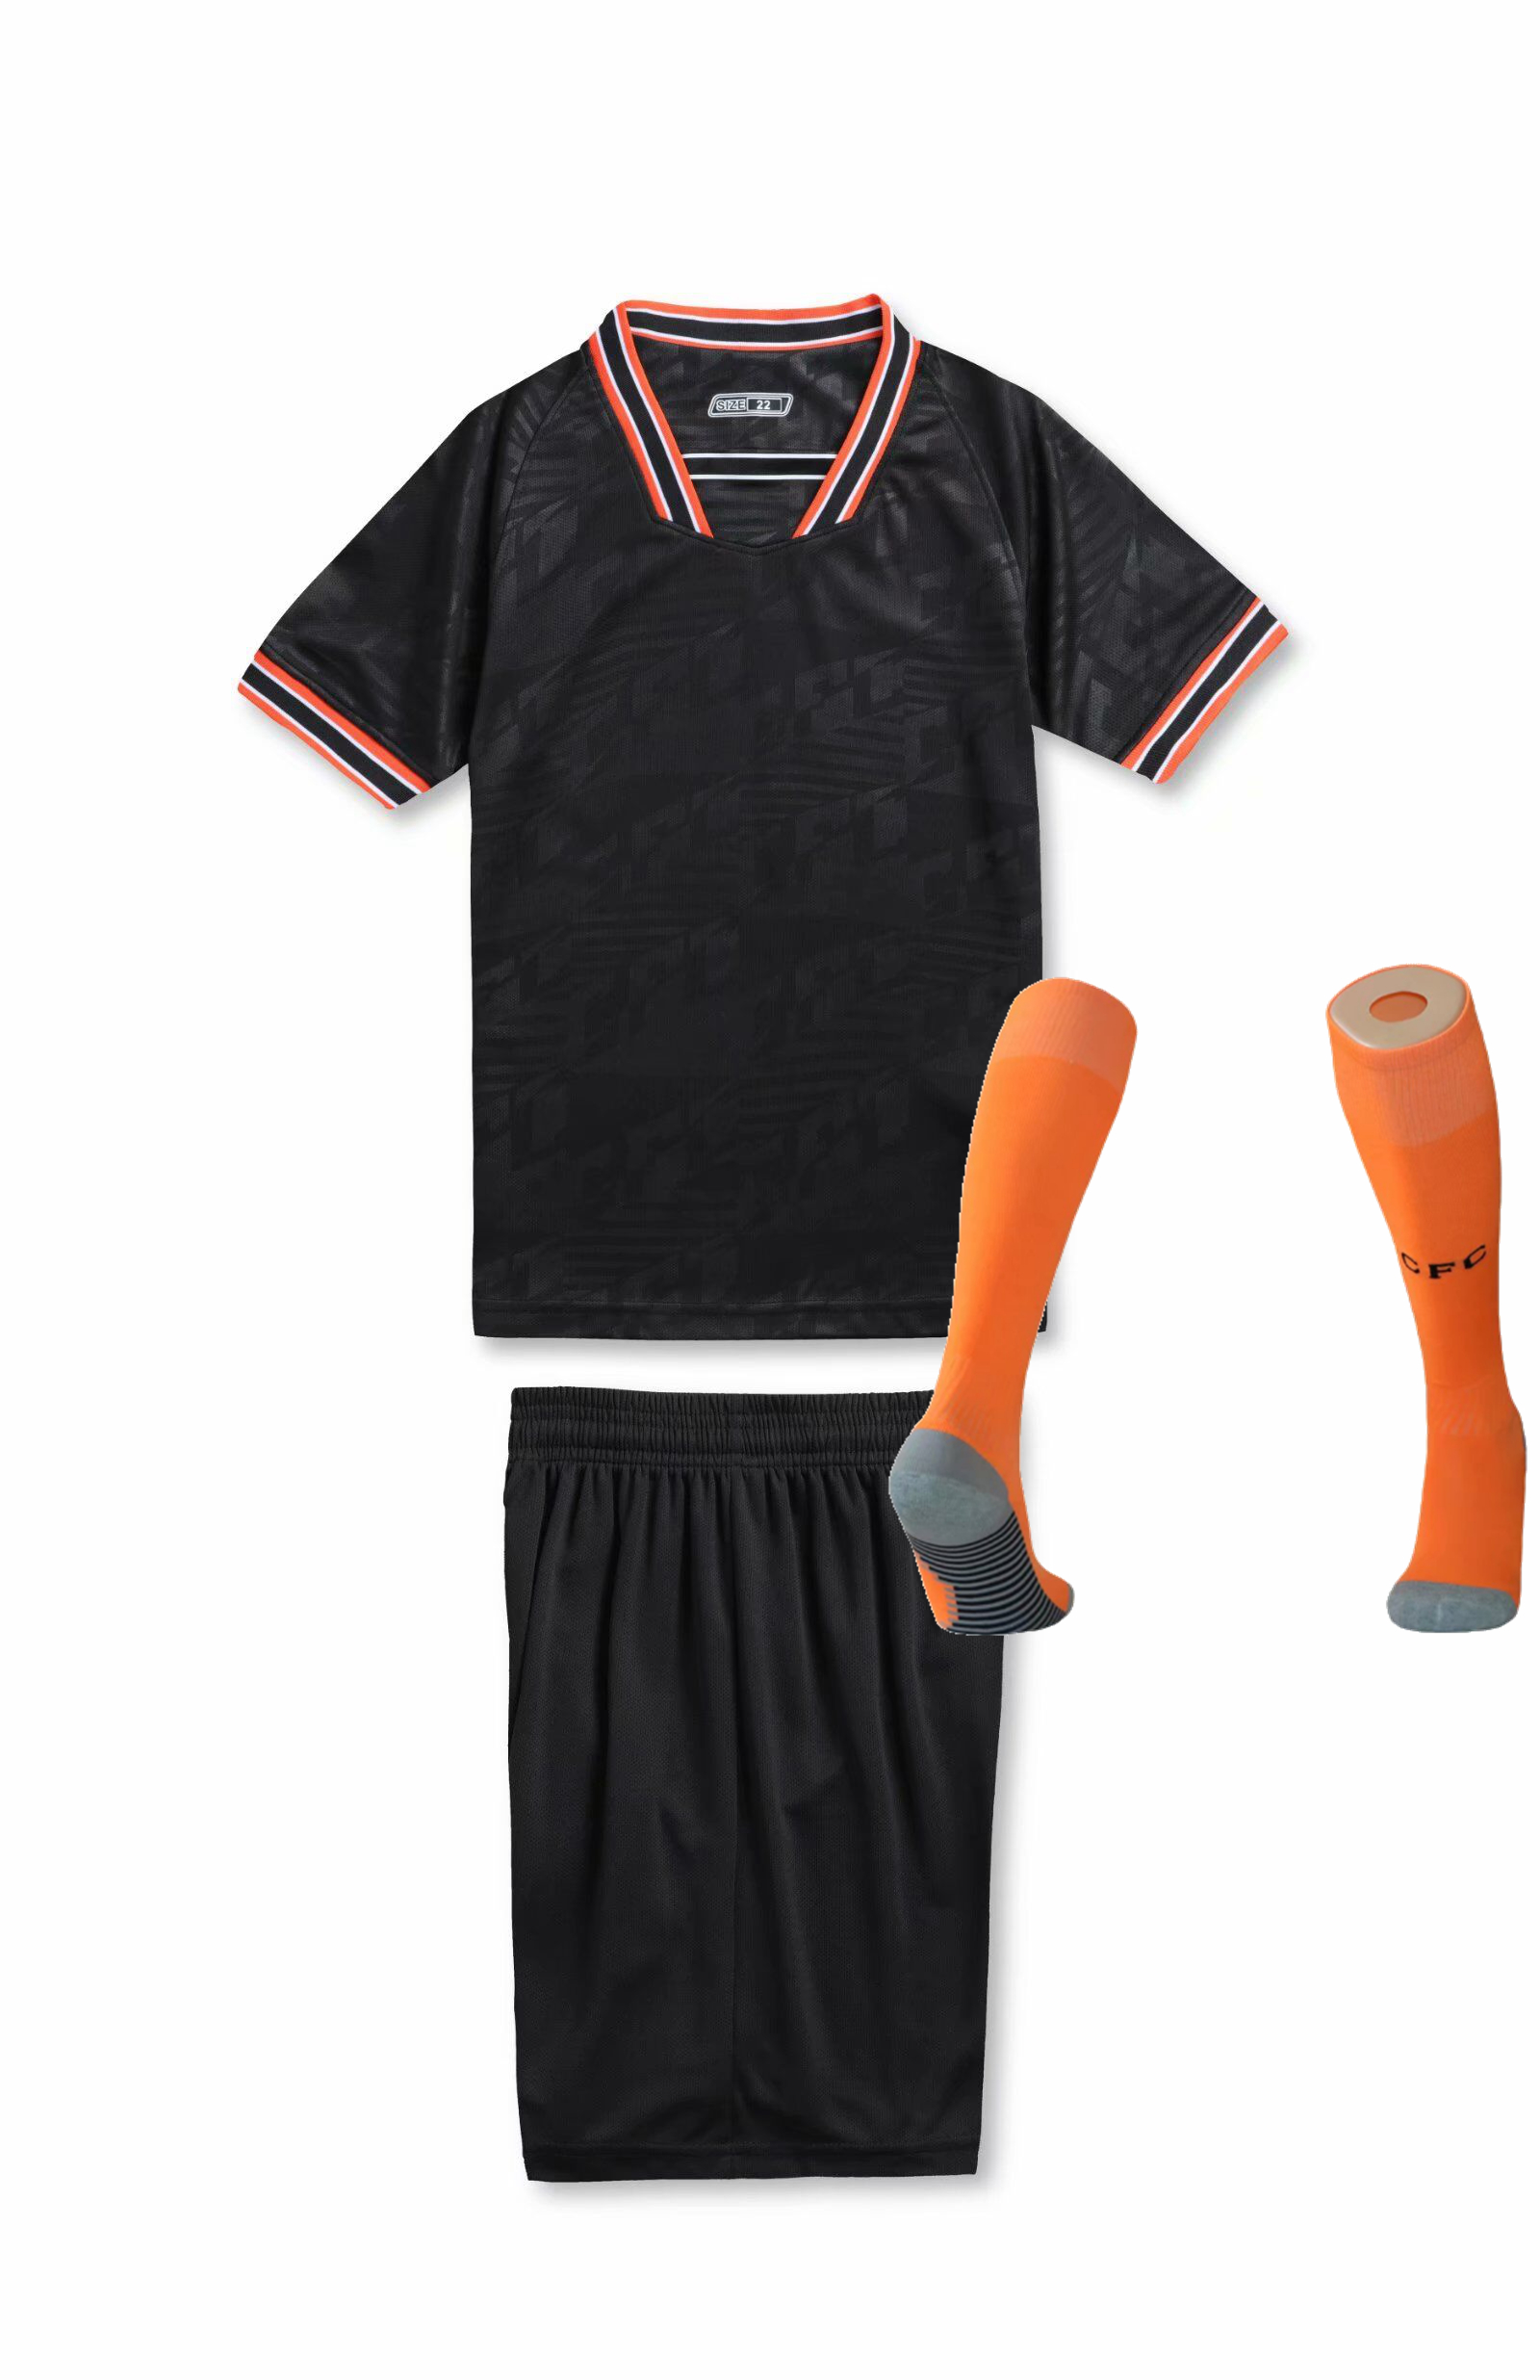 Children Sets football uniforms boys and girls sports kids youth training suits blank custom print soccer set with socks 12